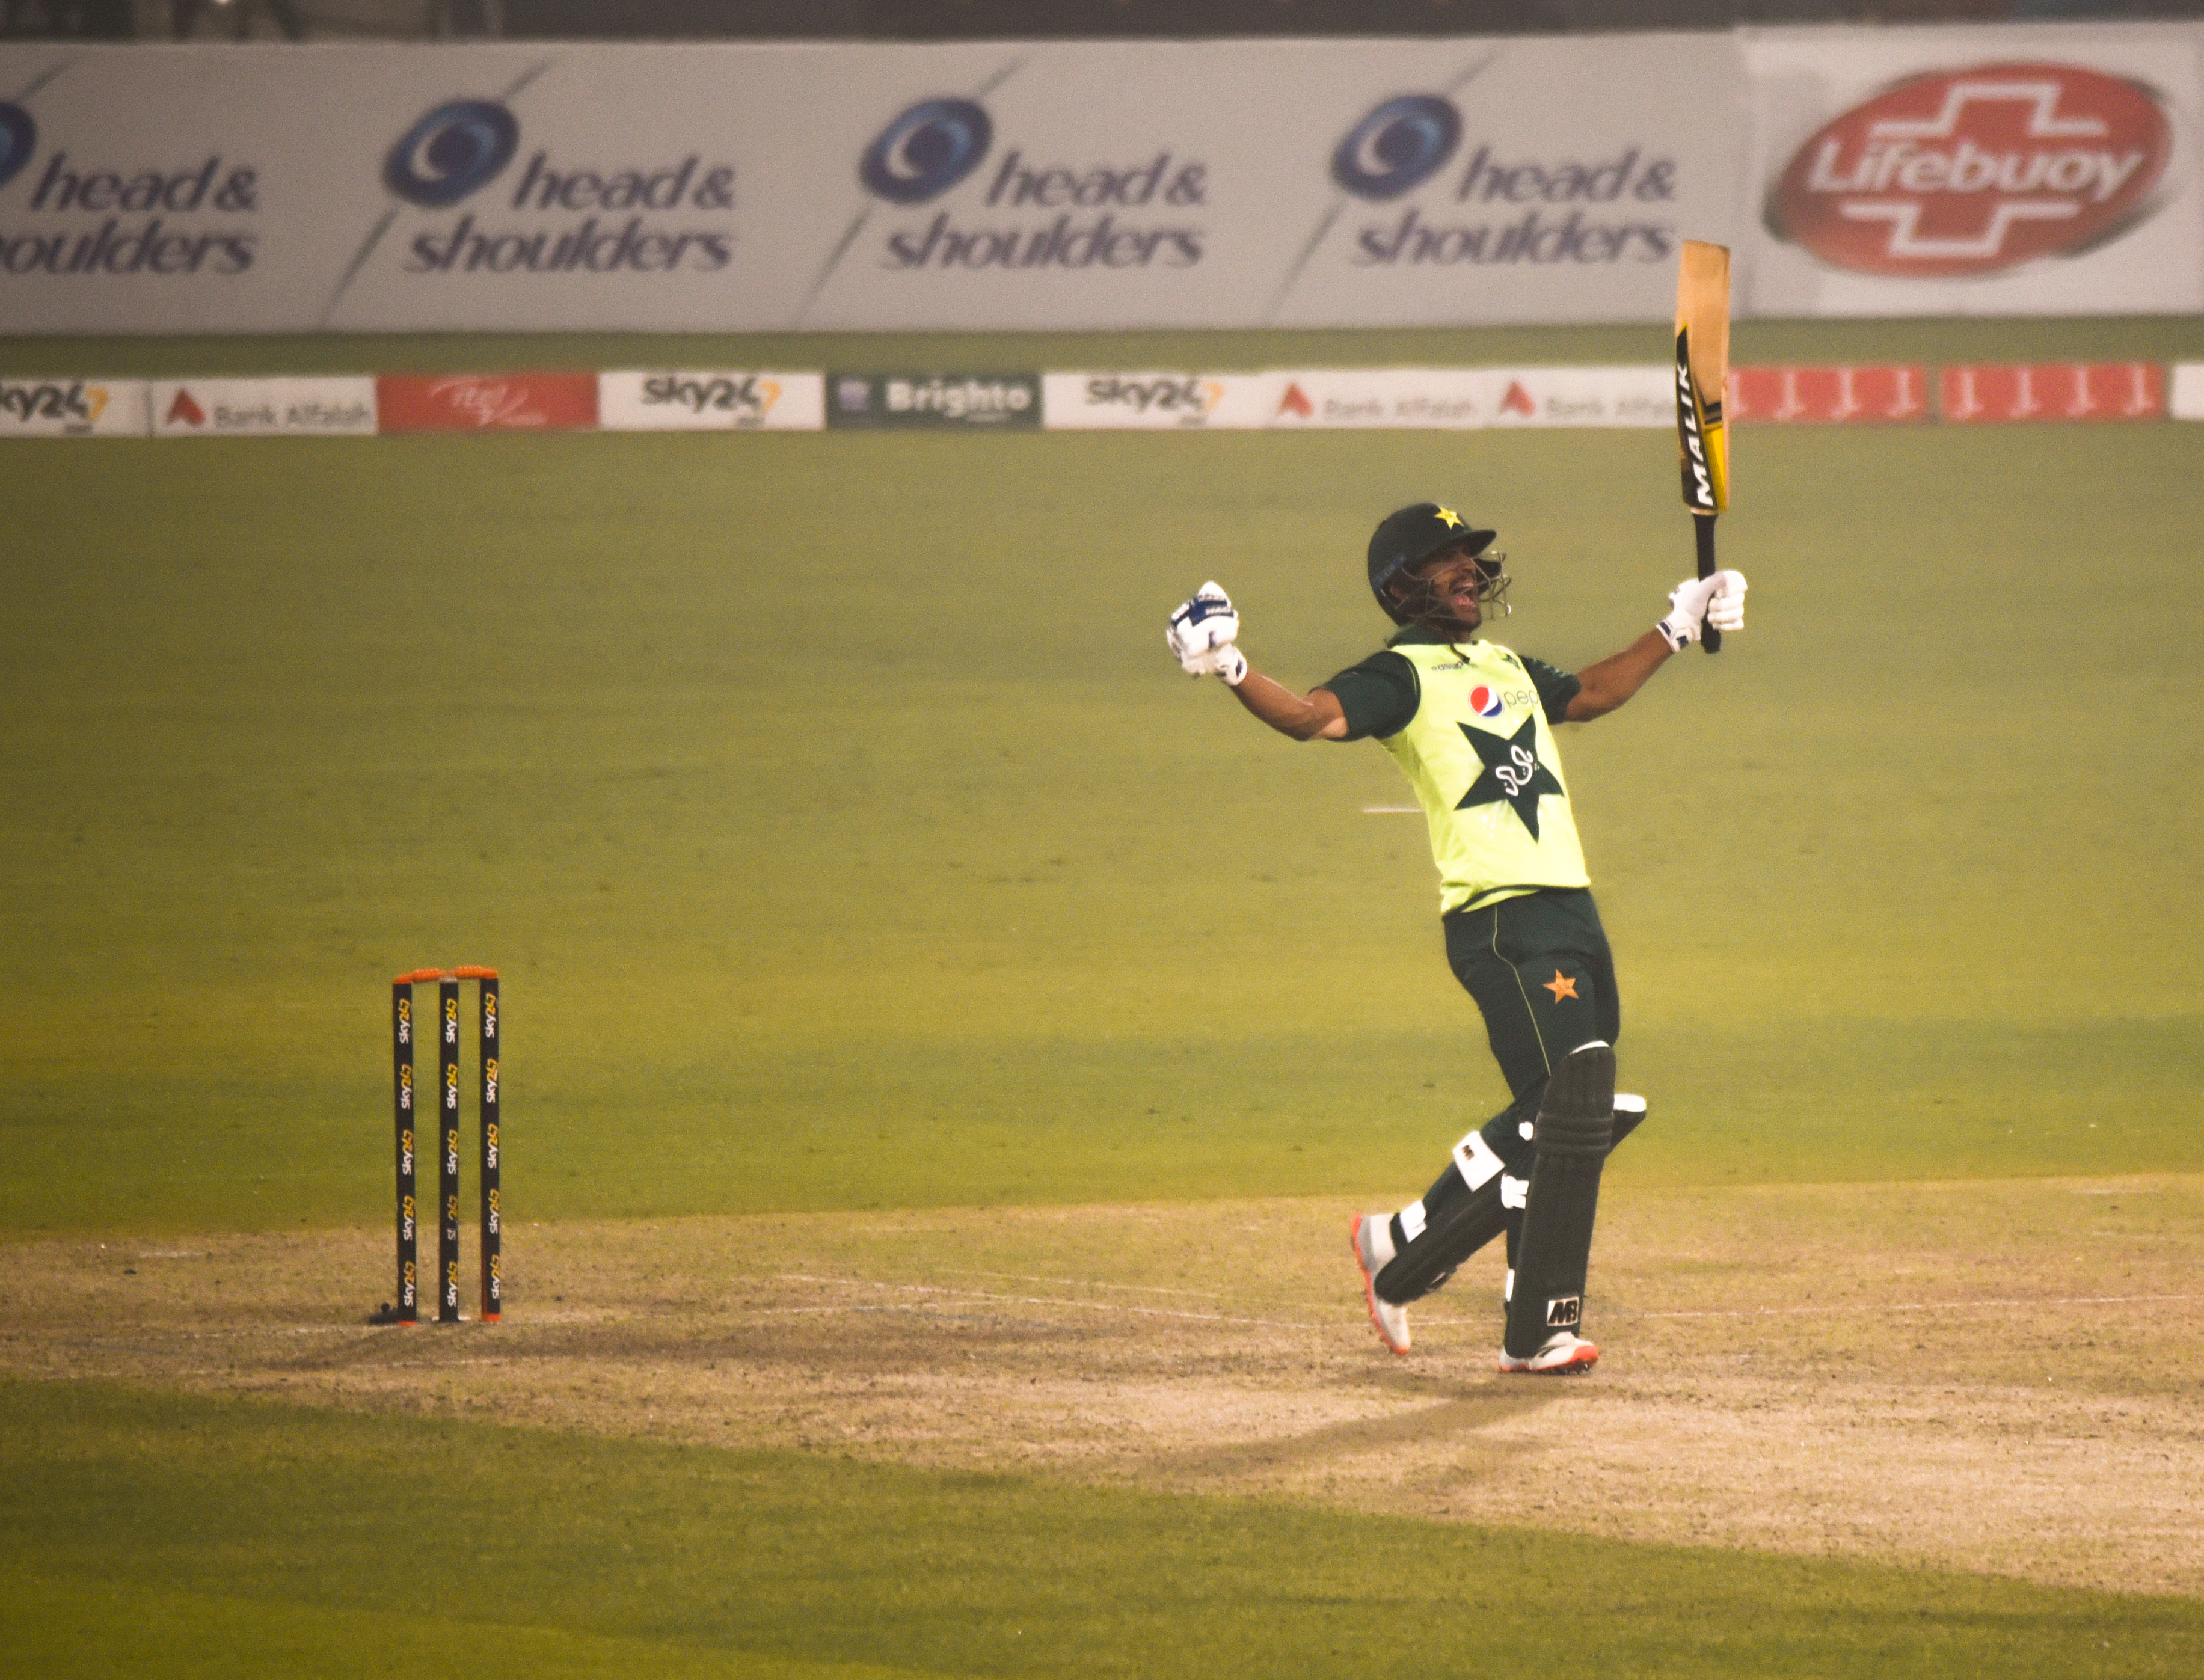 Pakistan overpower South Africa to win series and bring up century of T20I wins - International Cricket Council